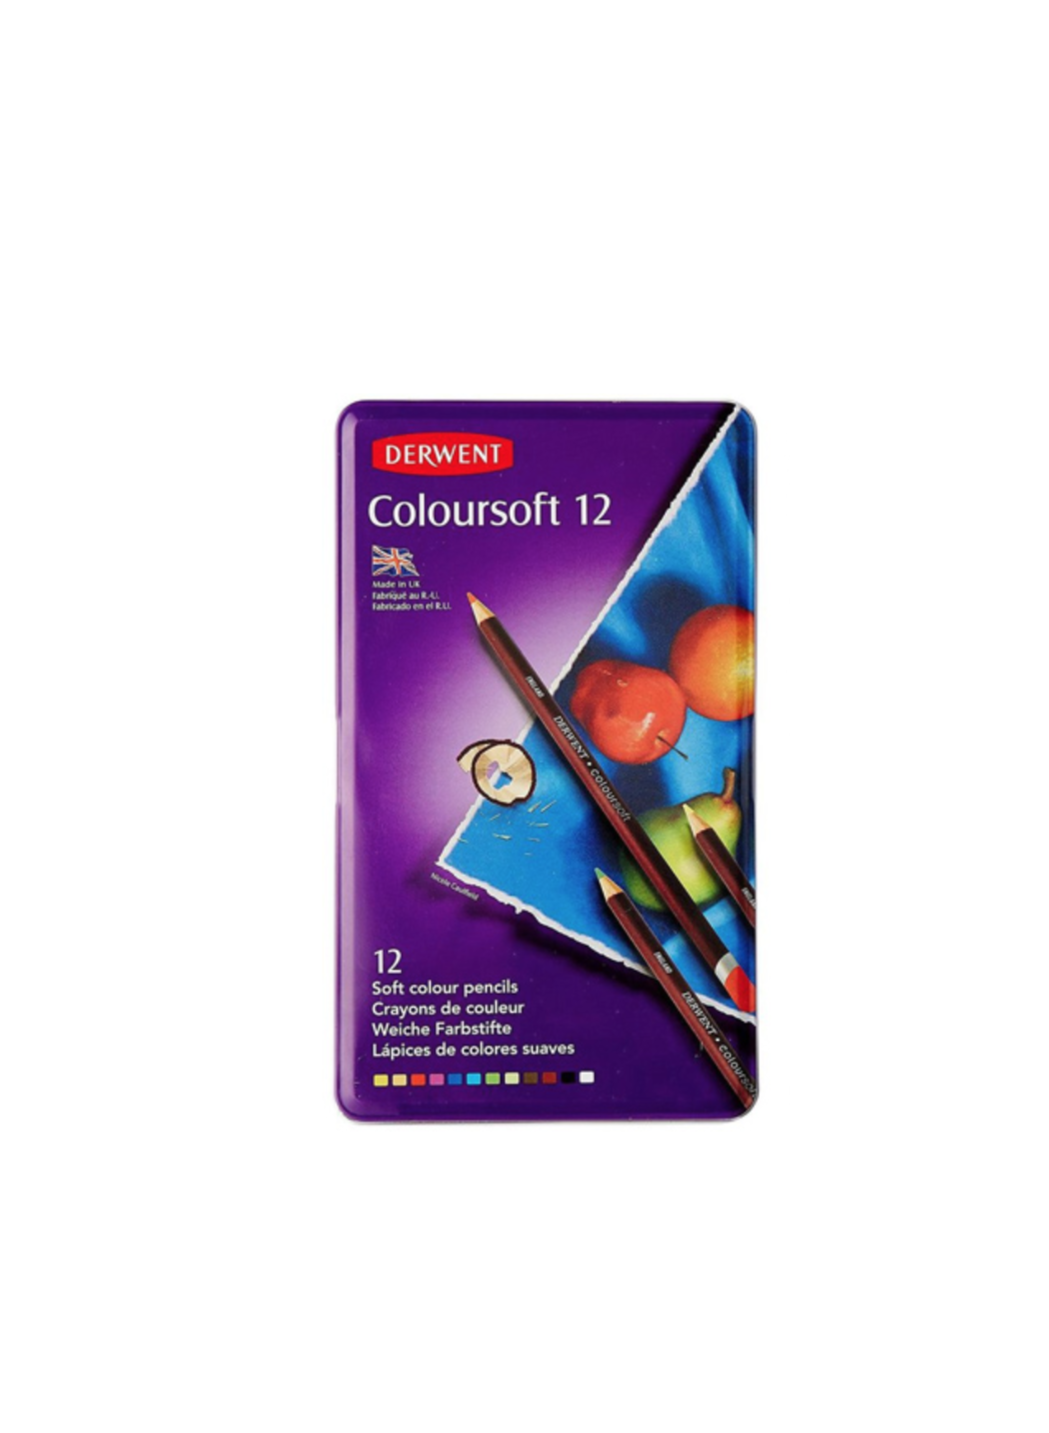 DERWENT COLOURSOFT 12 PENCILS CRAYON COULEUR ART BOITE METAL ARTISTE DESSIN DRAW 5028252188920 COMASOUND KARTEL CSK ONLINE